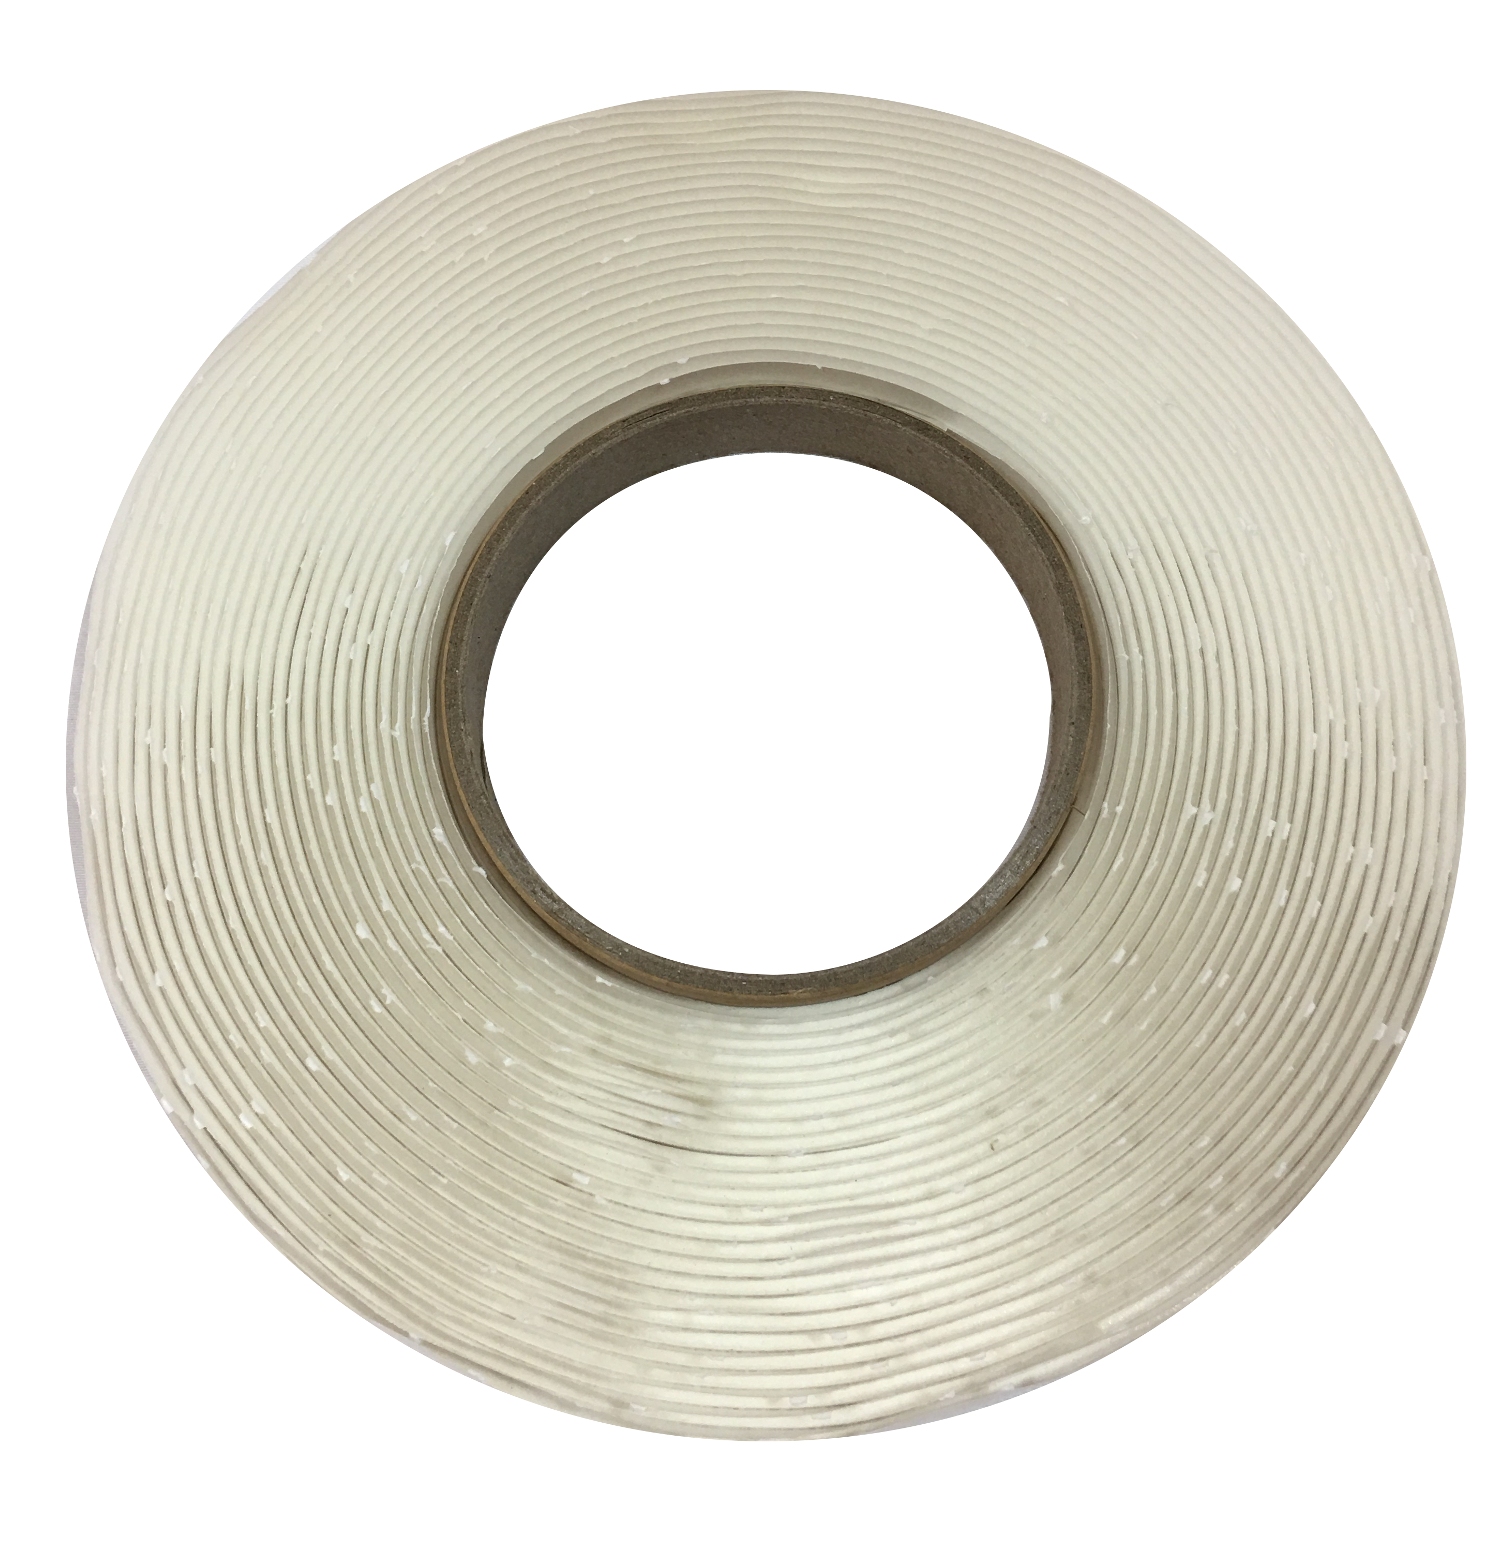 Superfoil Butyl Overlap Sealant Tape For Sf19bb Breathable